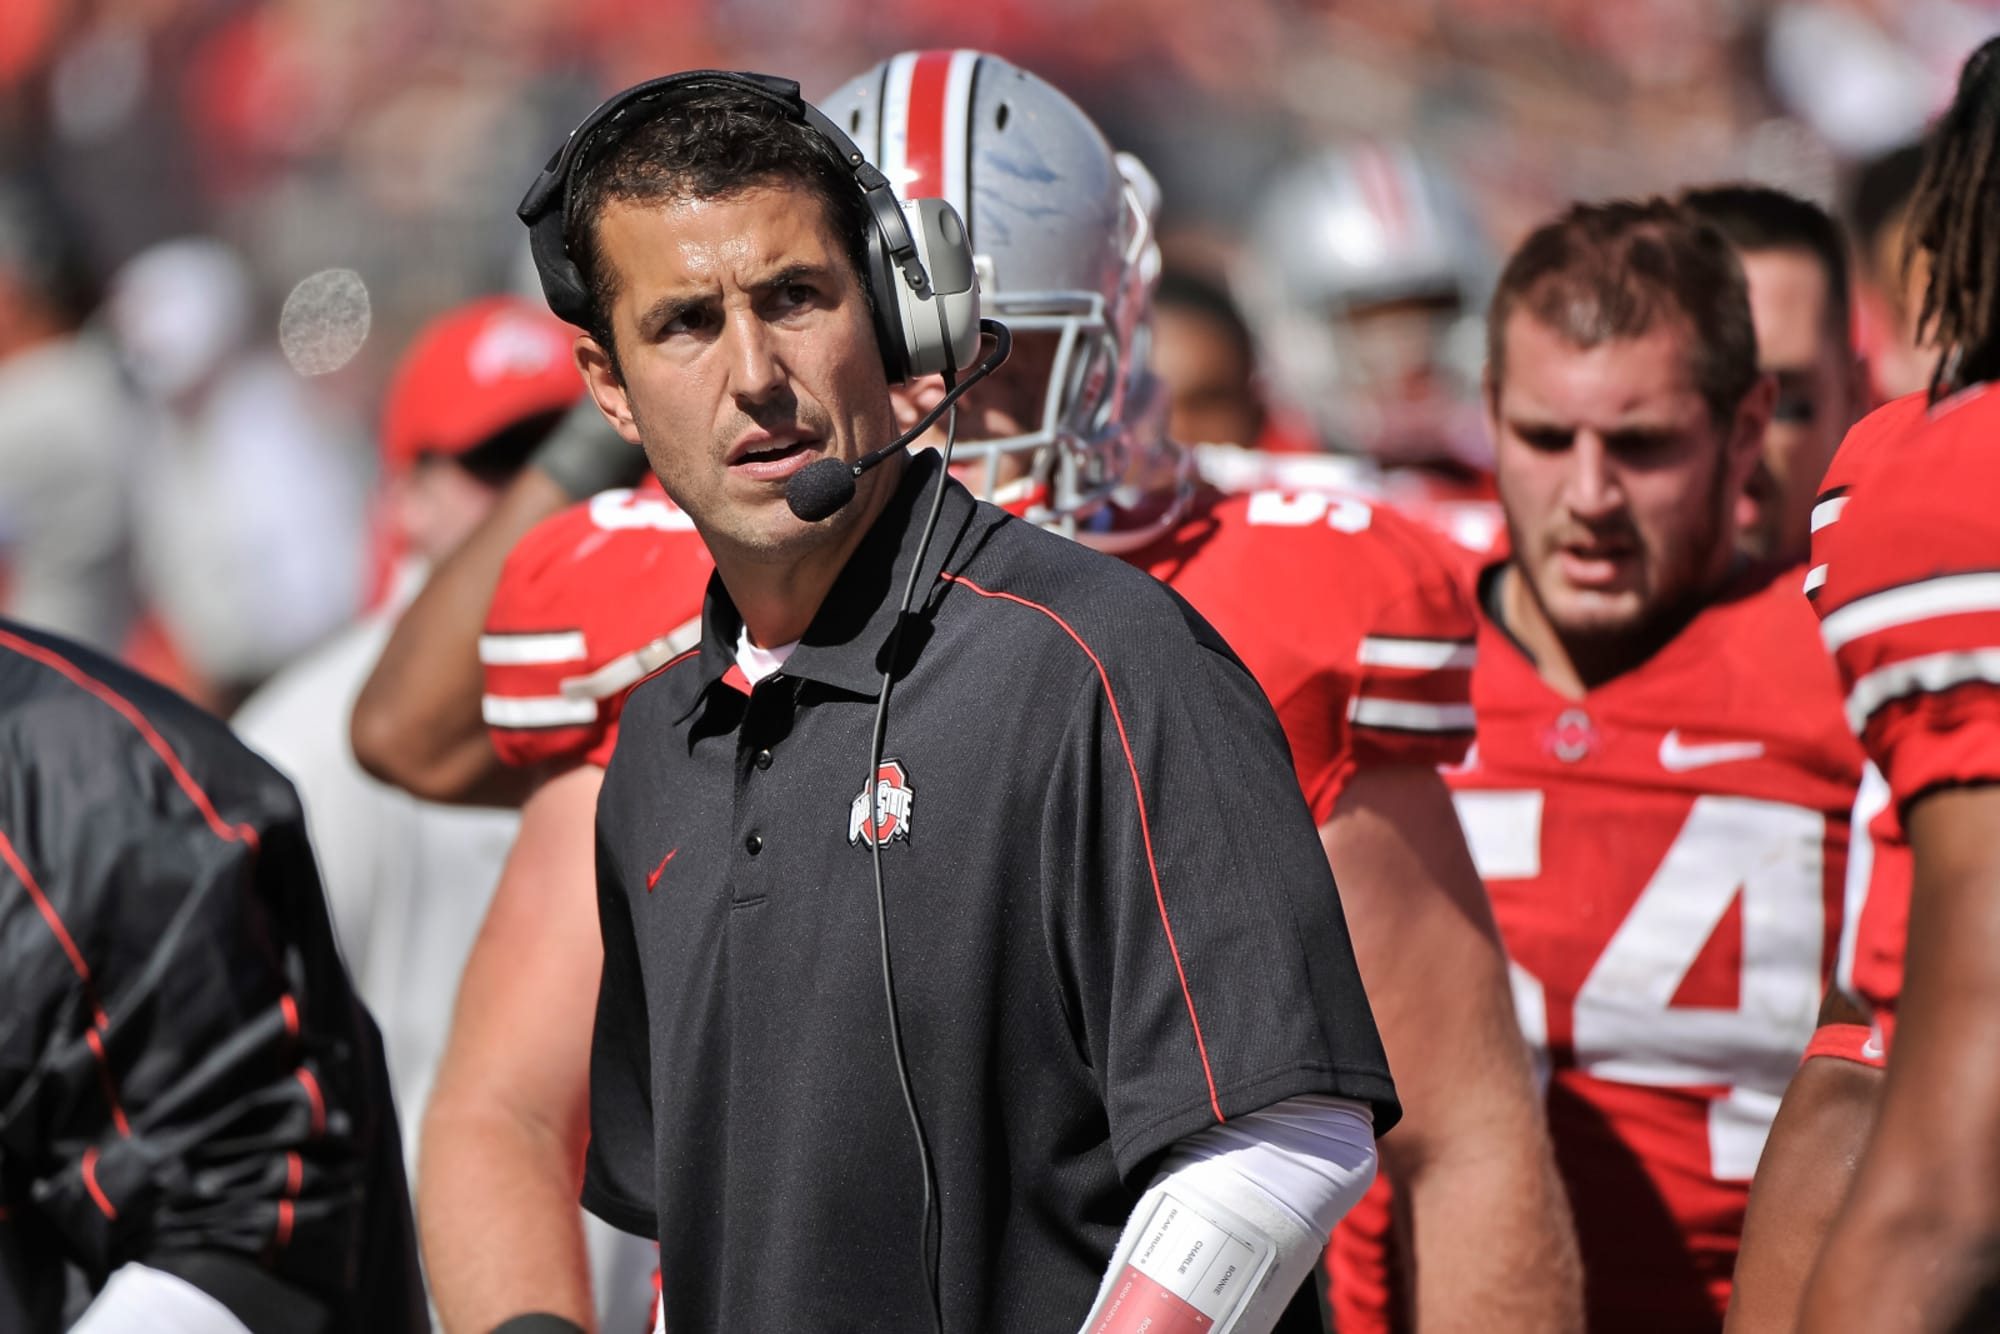 Former Ohio State coach may get big time job offer